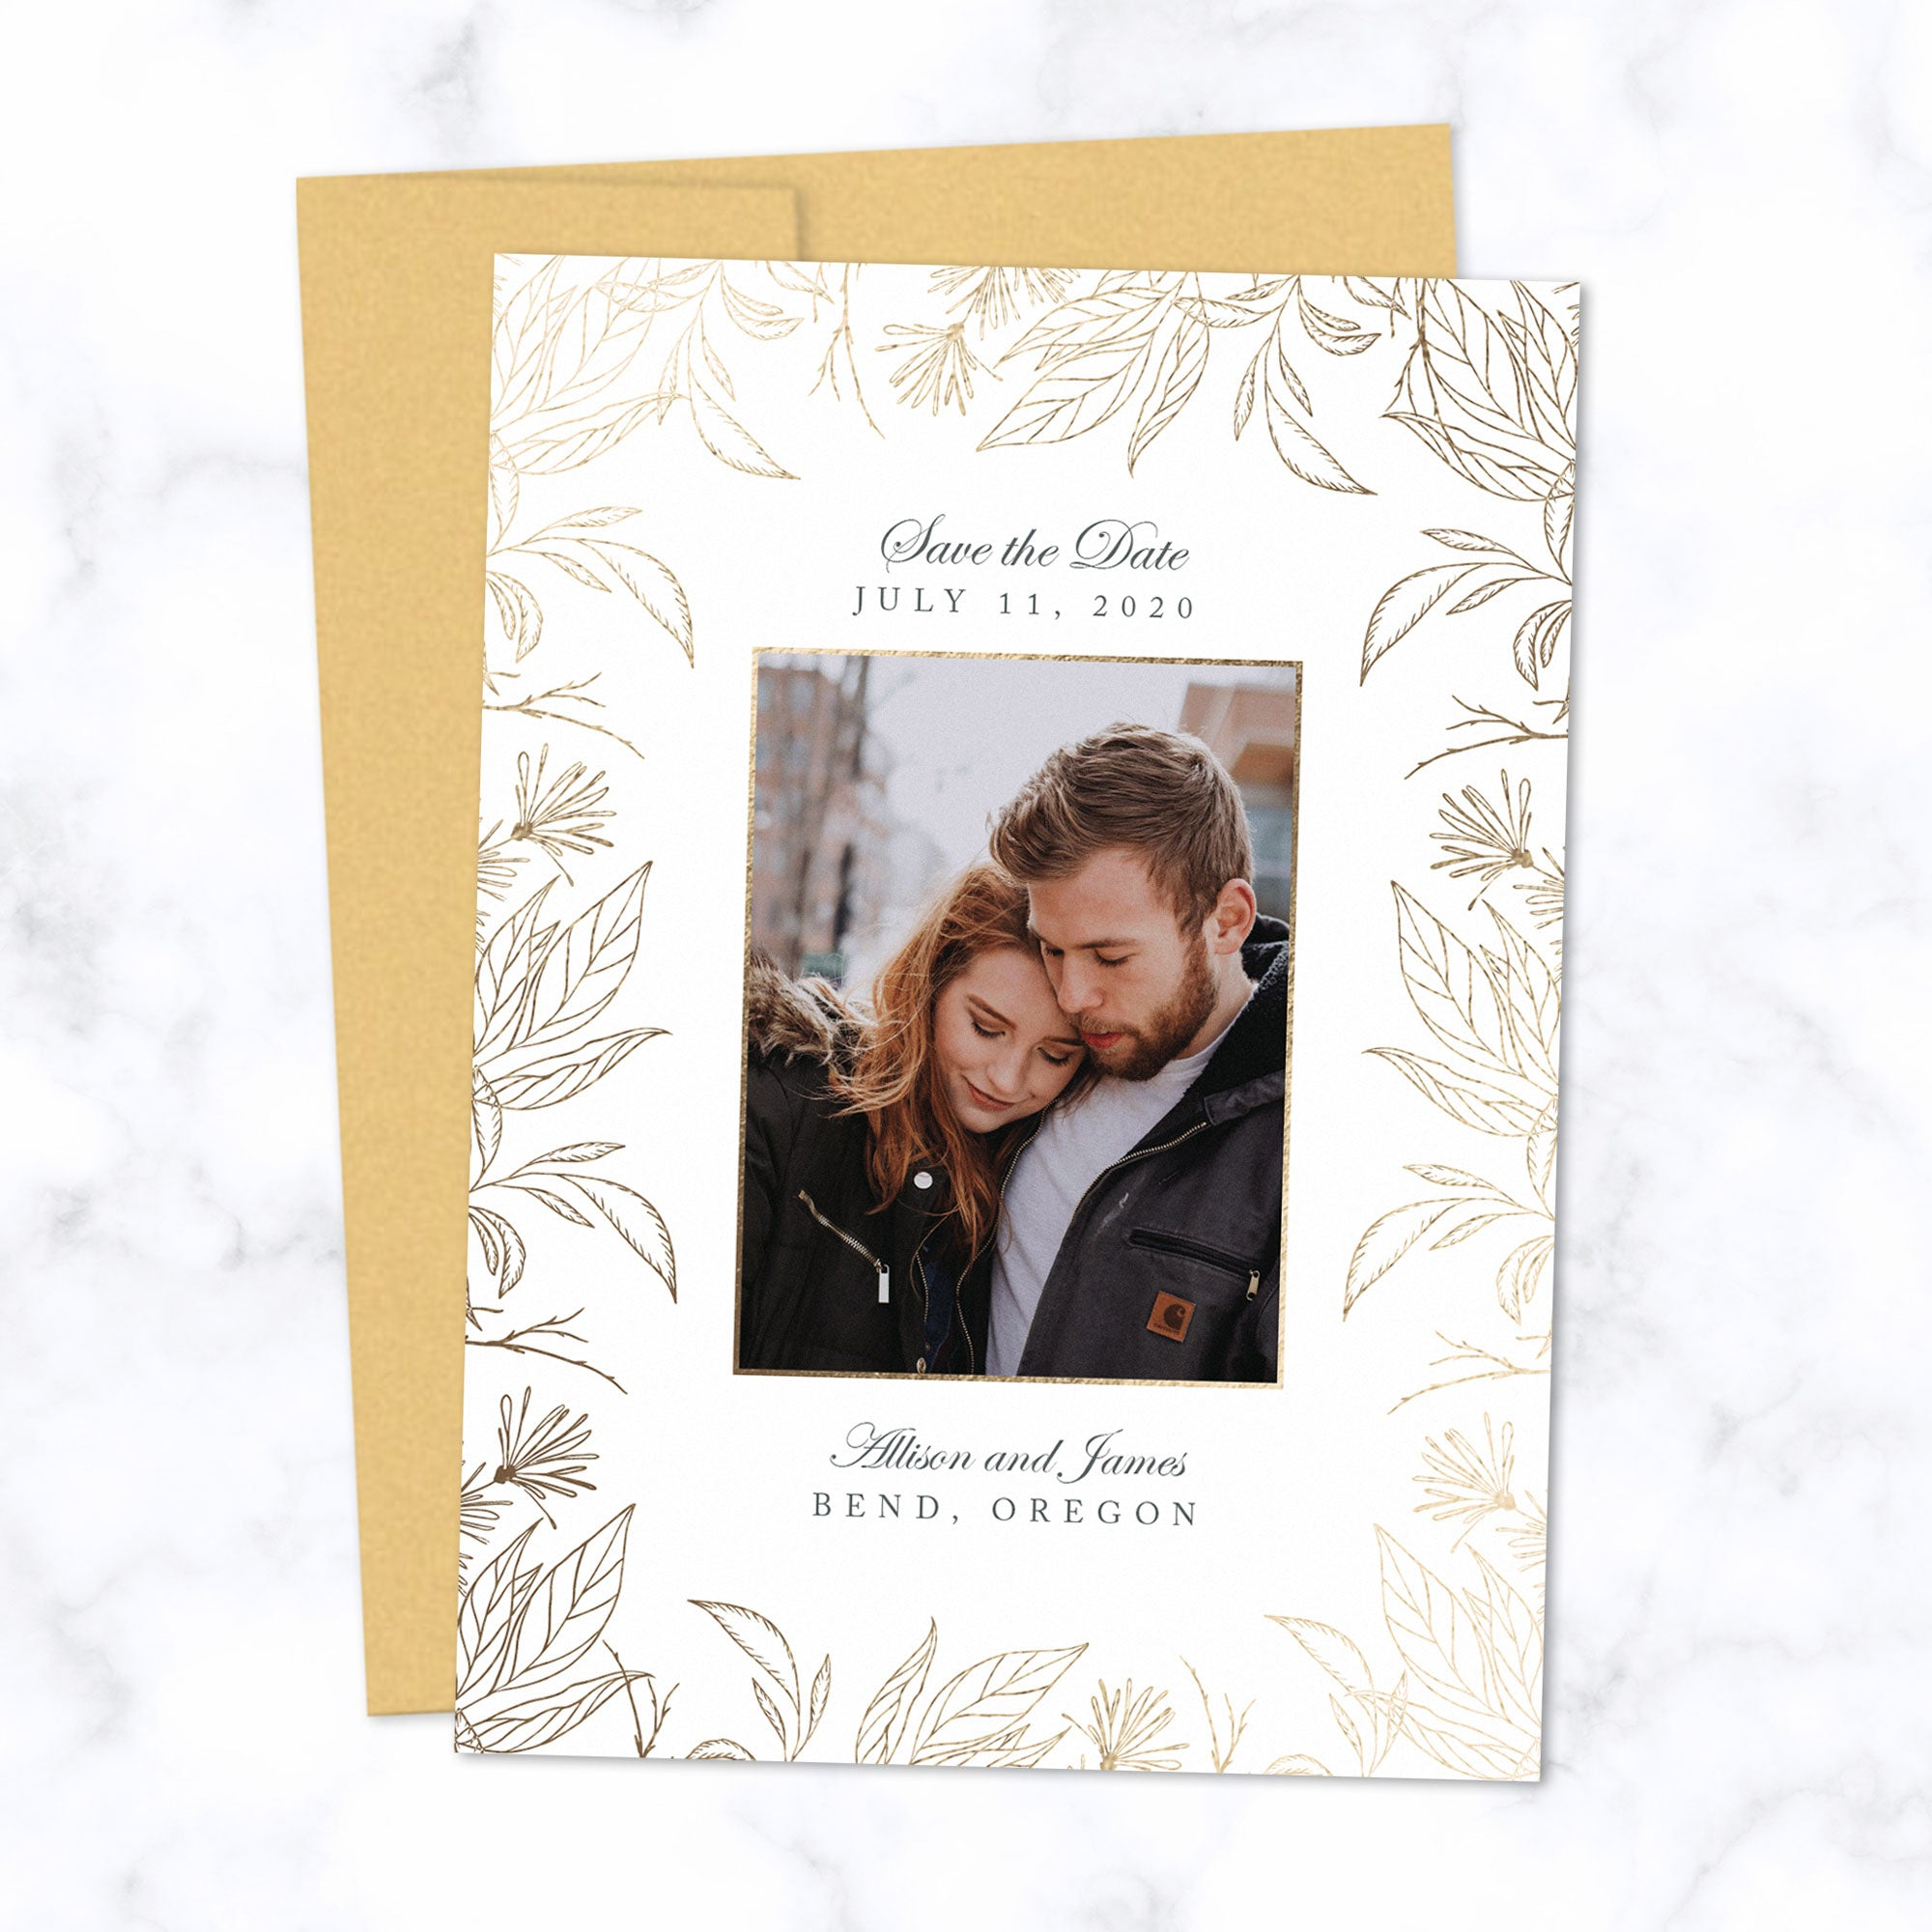 Gold Foil Botanical Frame Save the Date Card Personalized with Photo and Details shown with matching Gold envelope